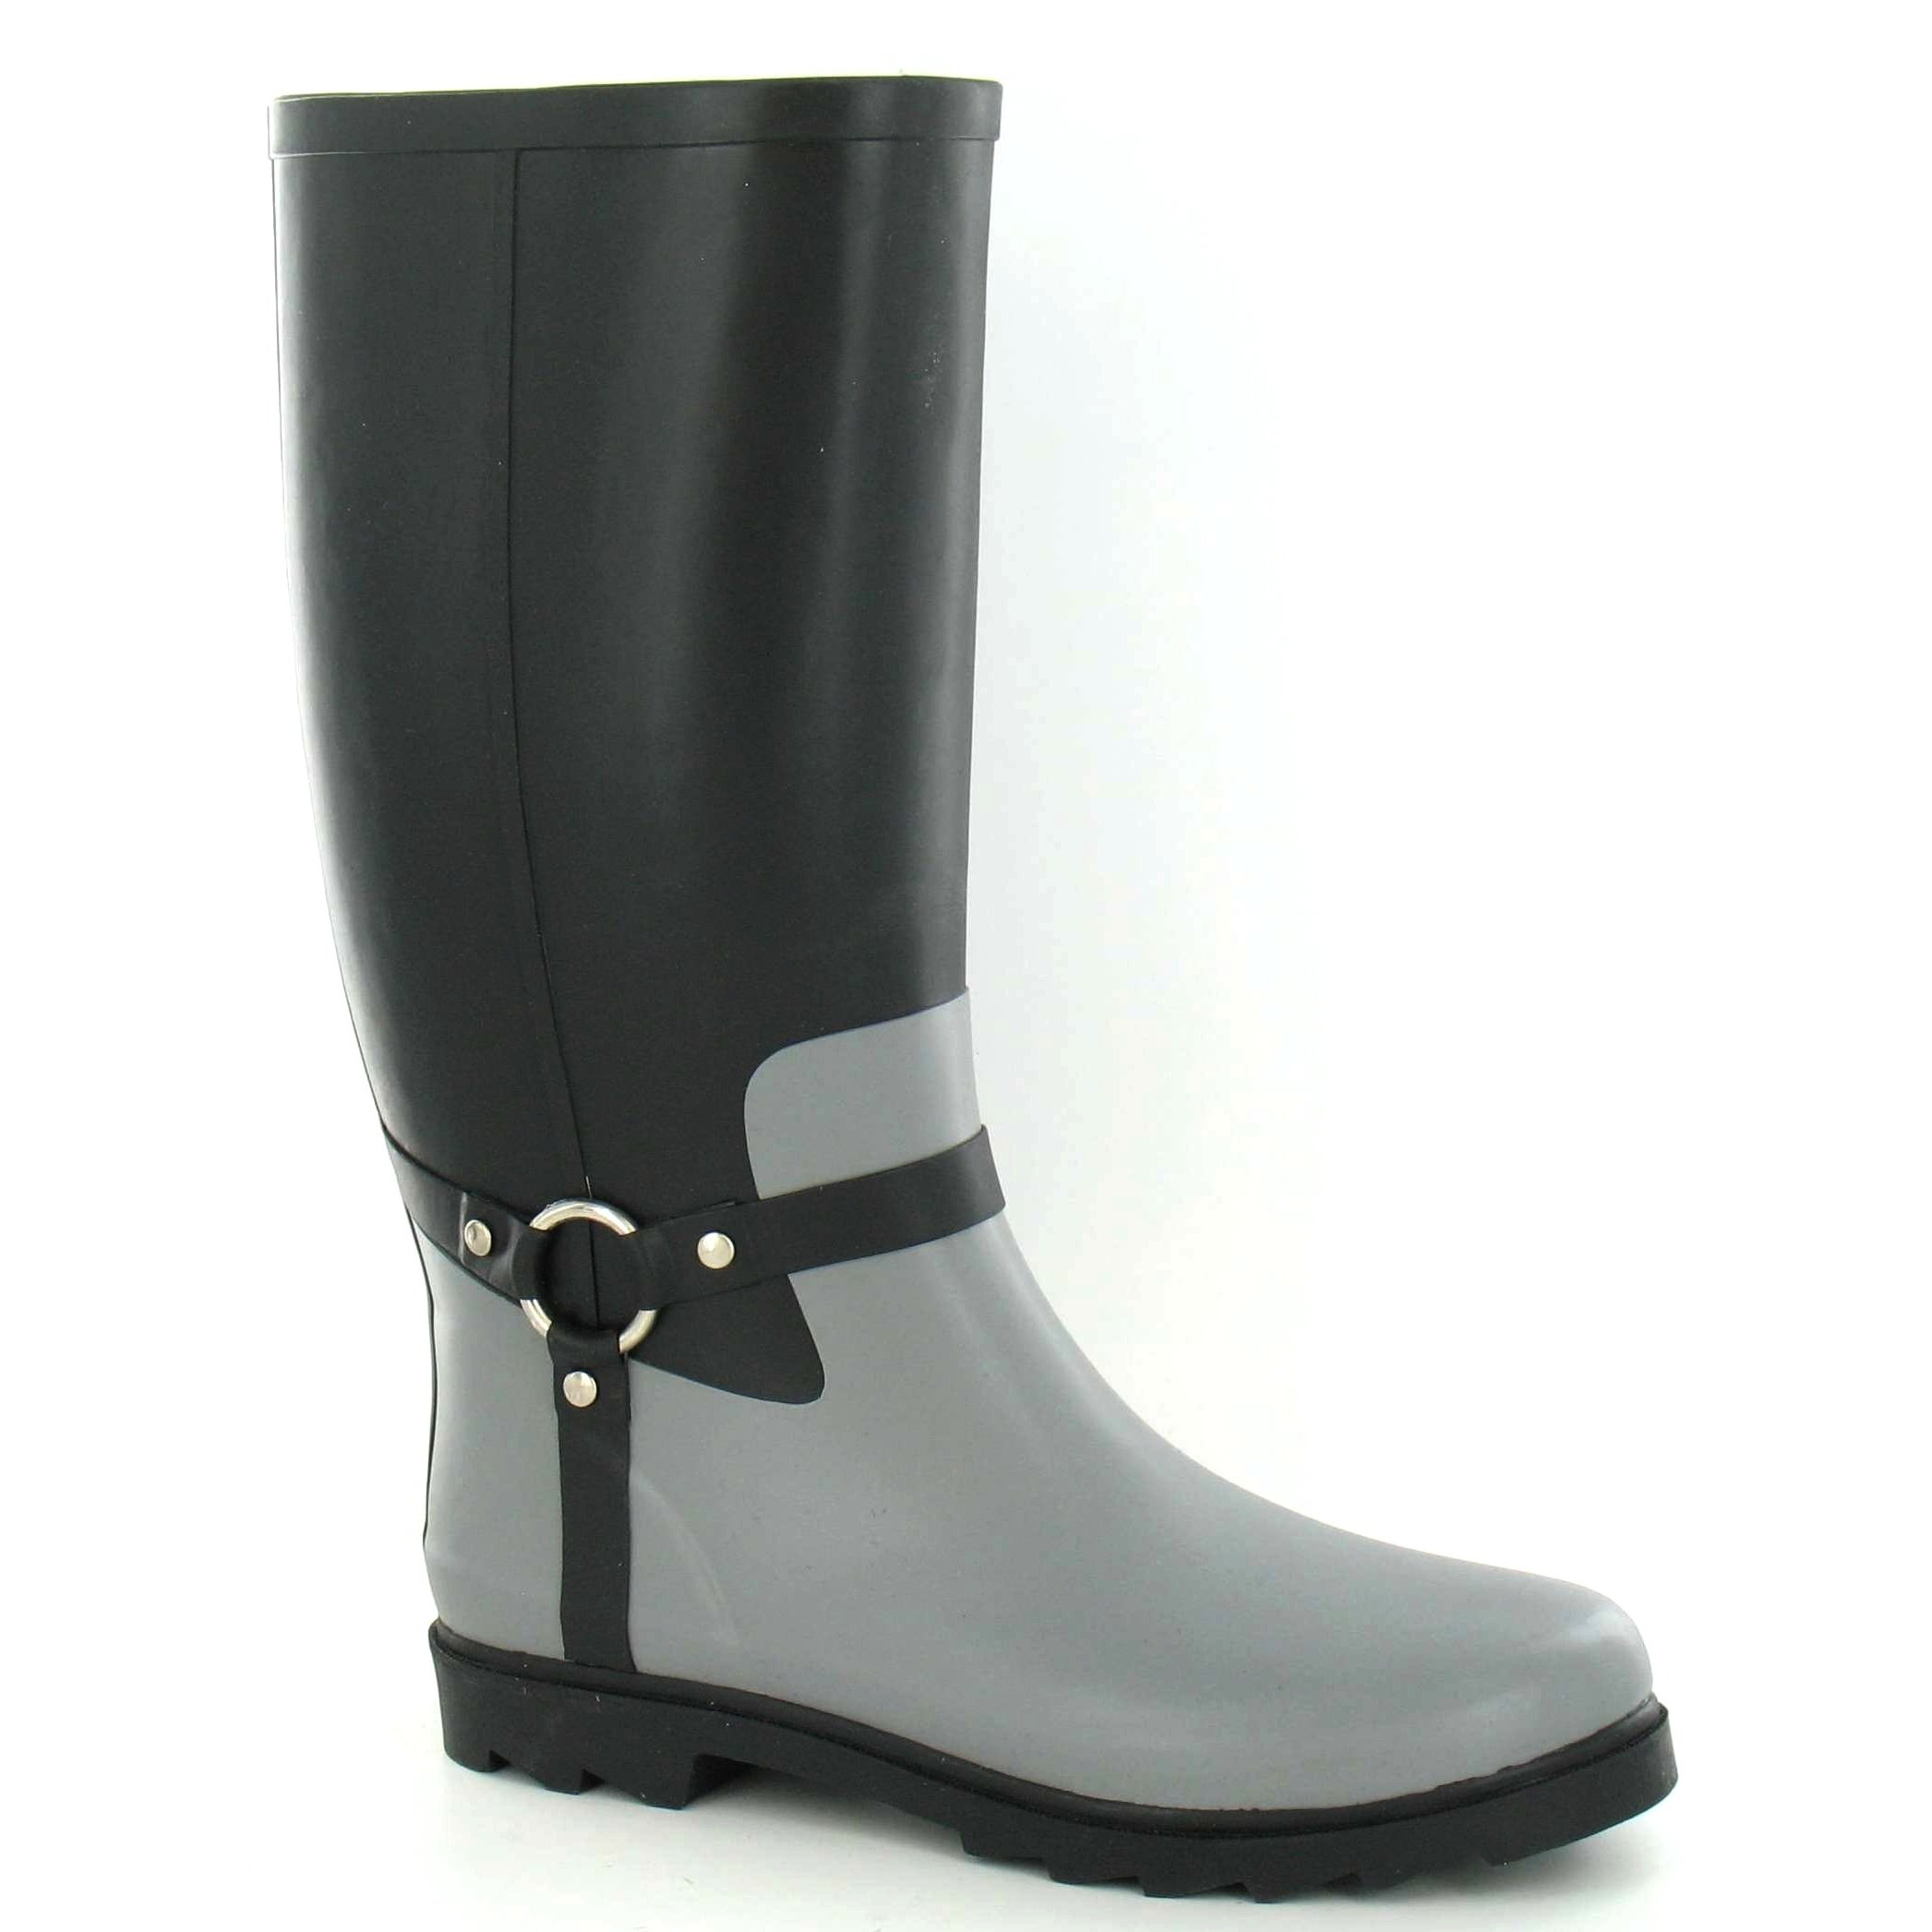 Spot On Mens Ring Strap Rubber Wellington Boots (8 US) (Black/Gray)